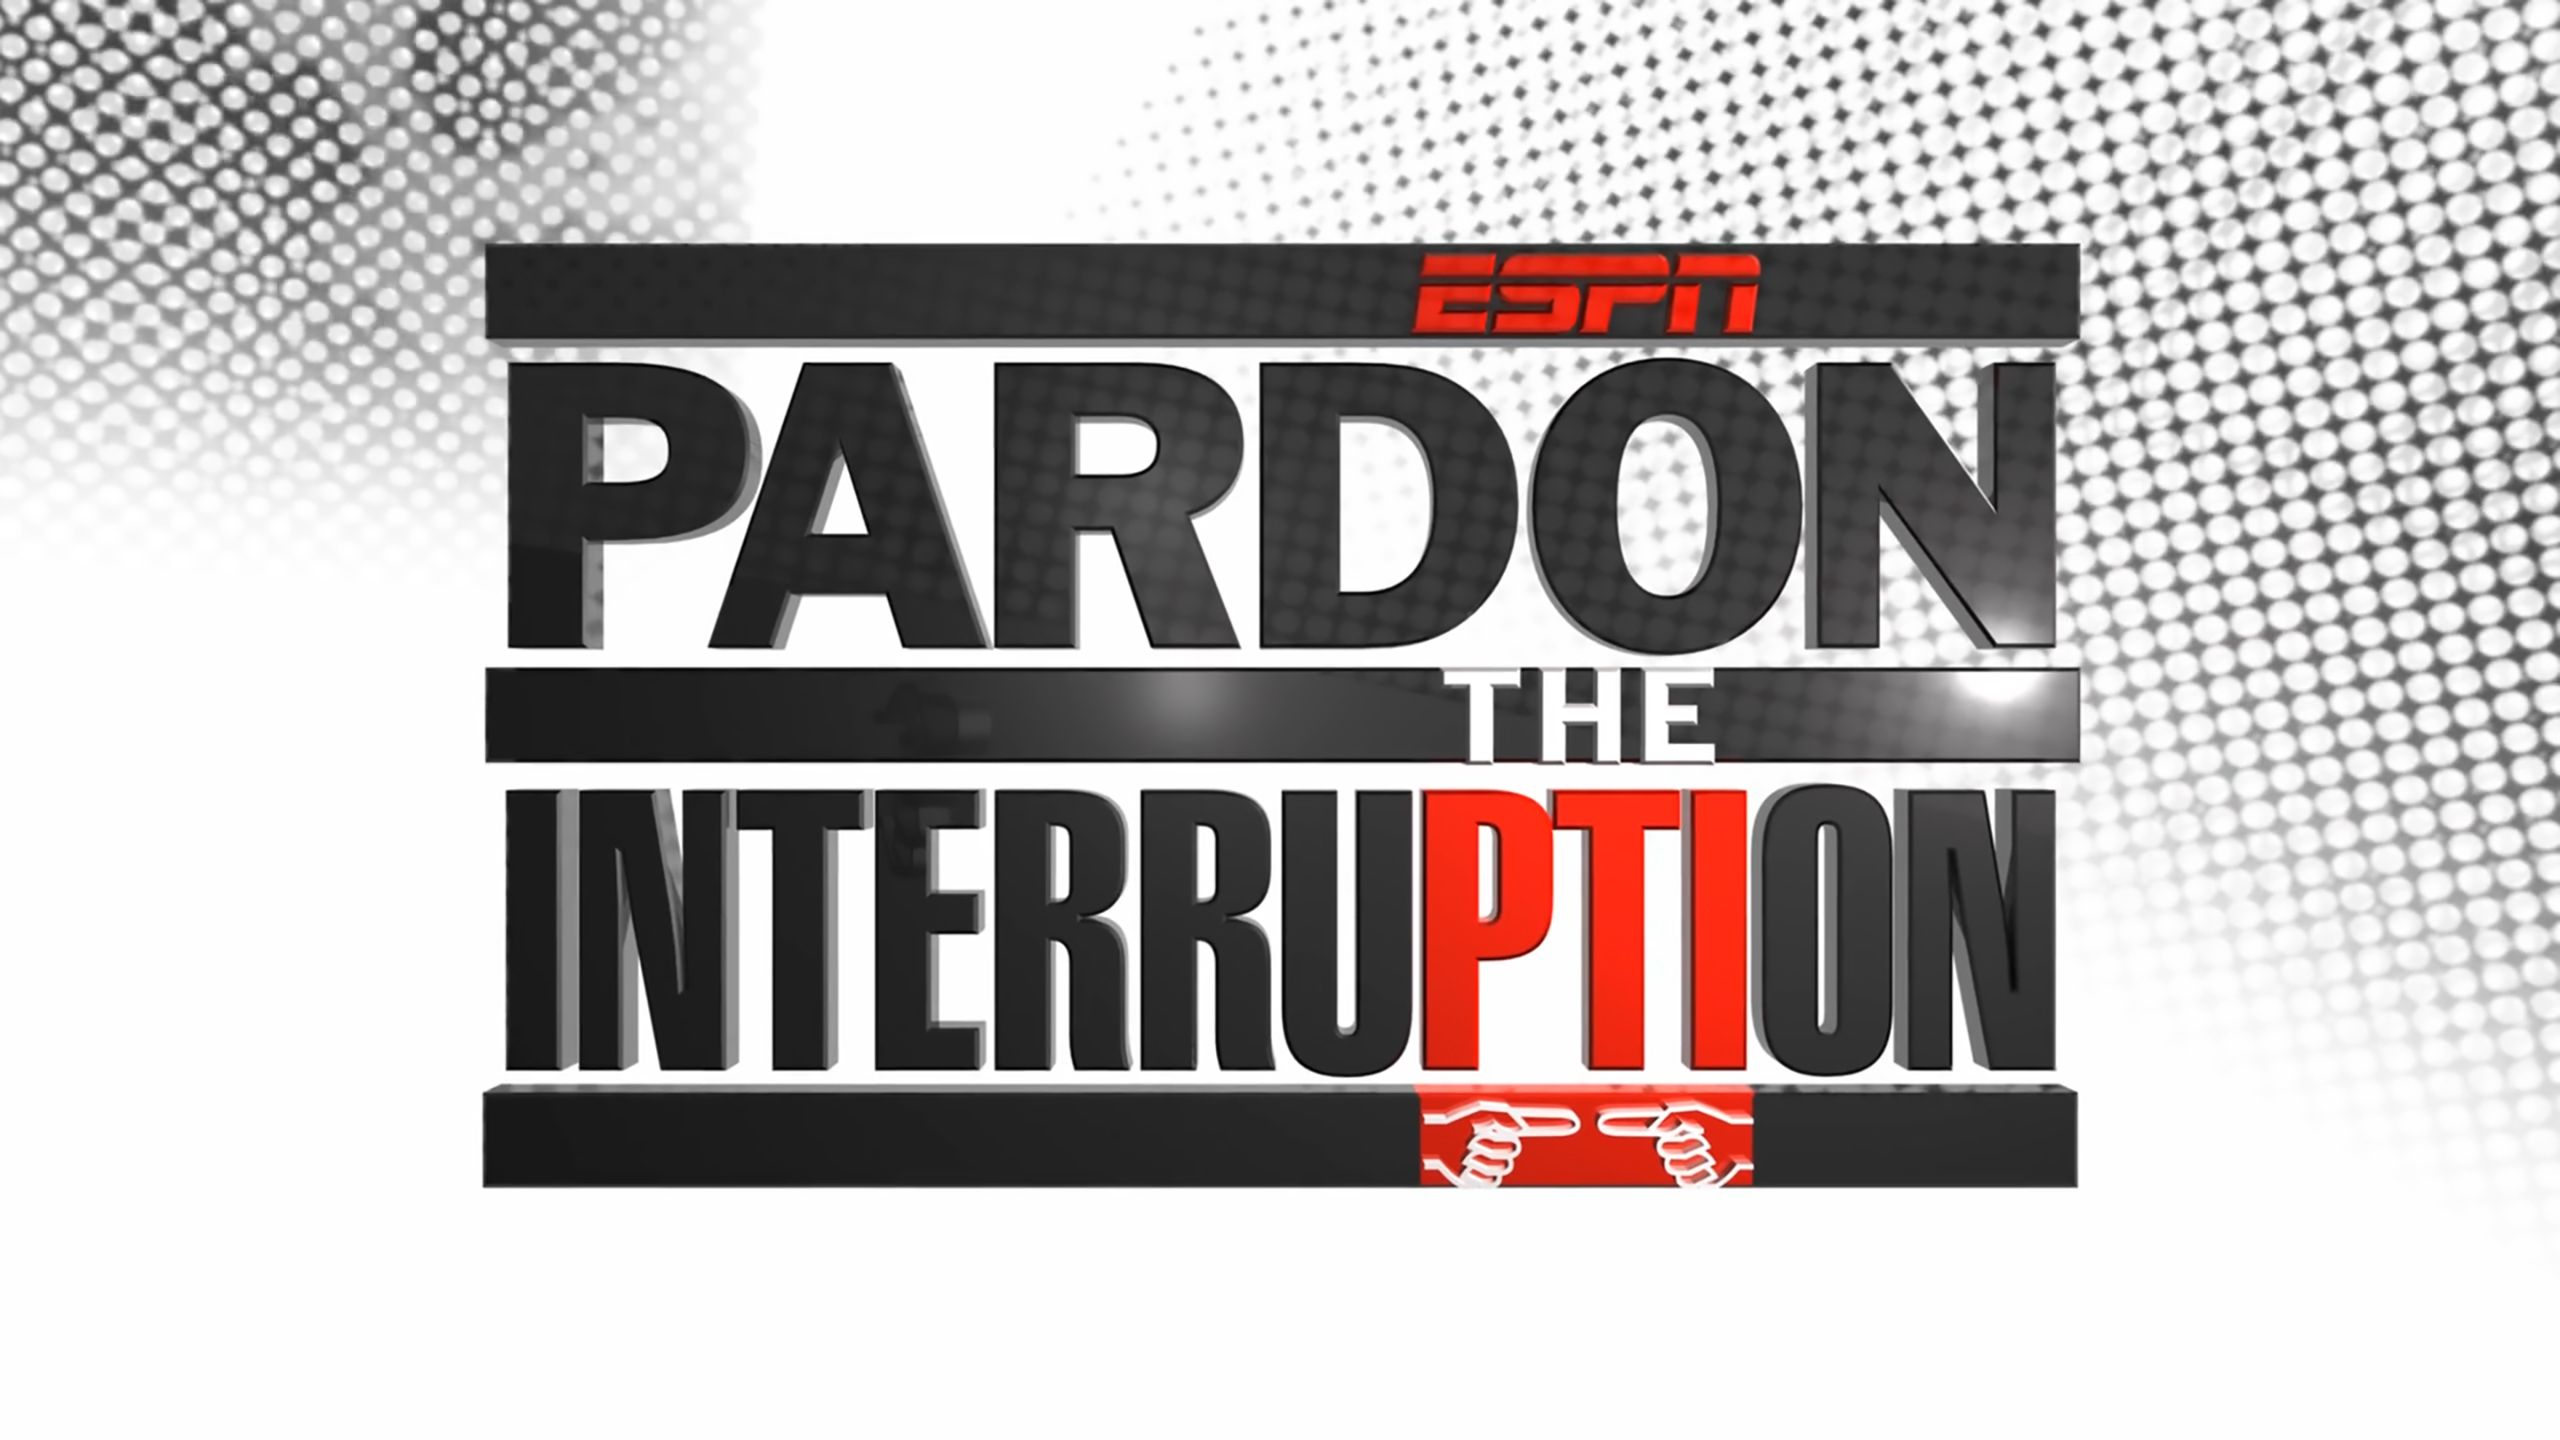 Fri, 10/20 - Pardon The Interruption